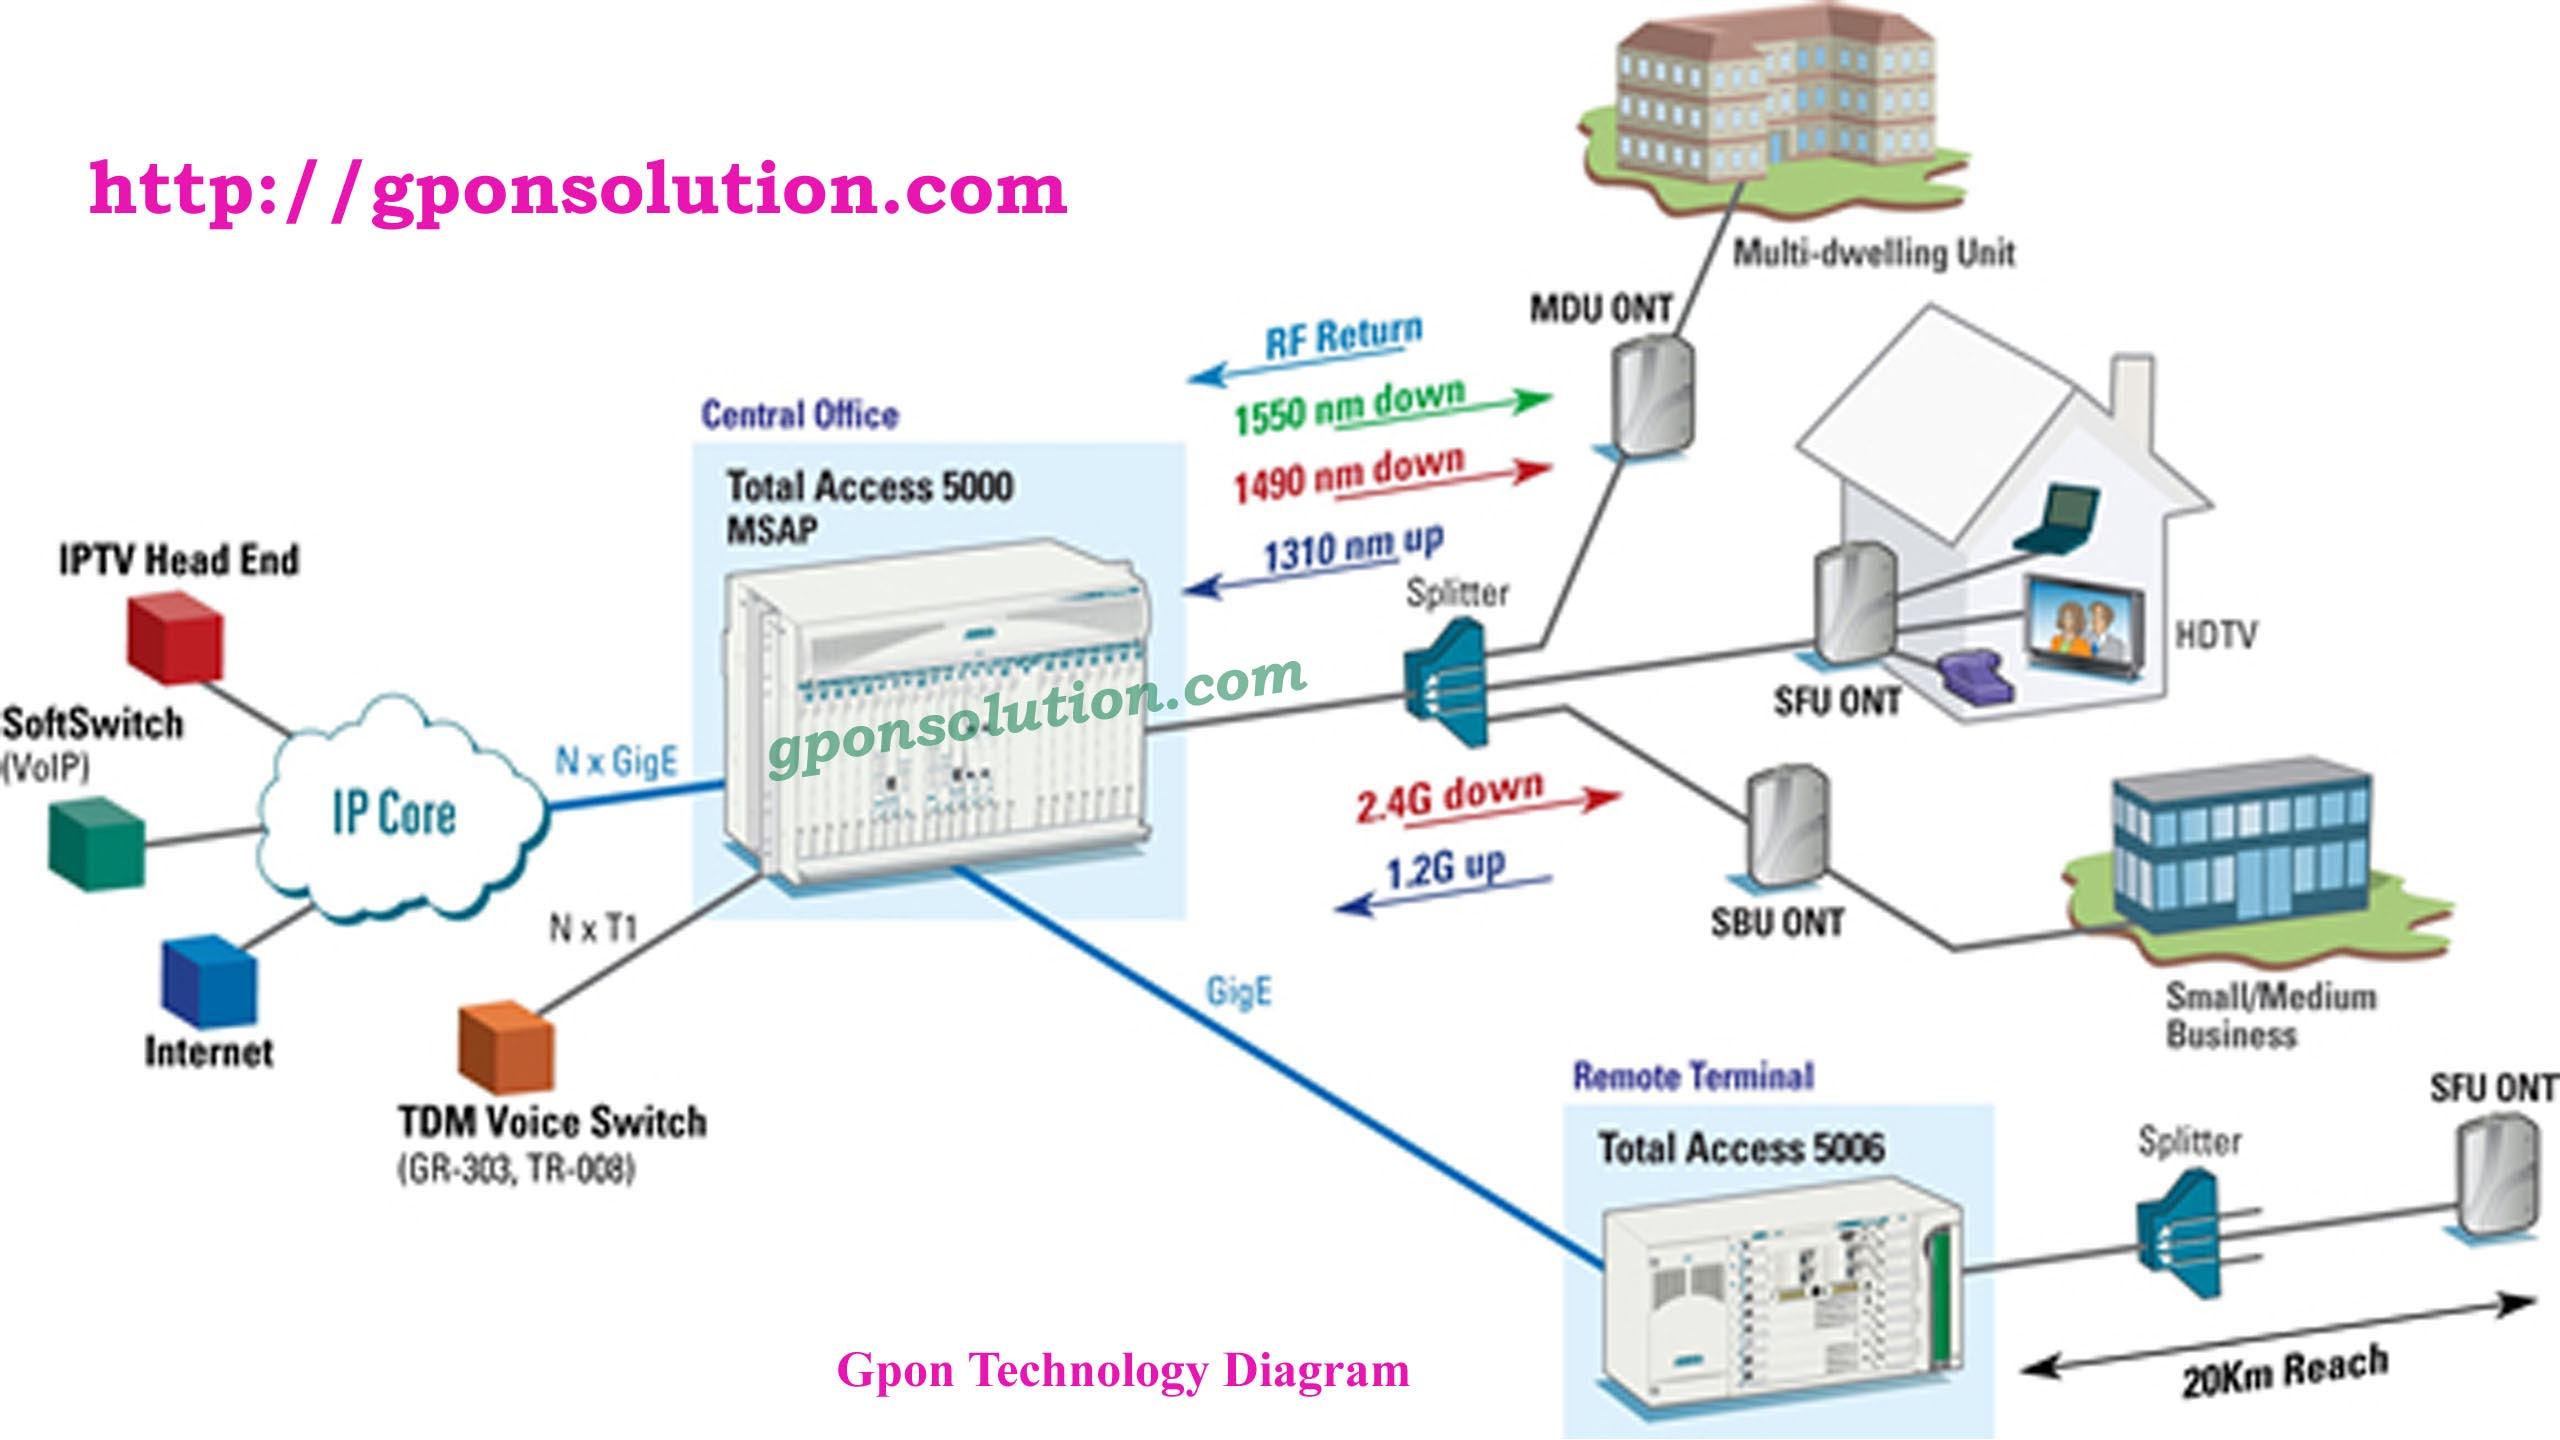 gpon network architecture diagram   gpon solutiongpon network architecture diagram